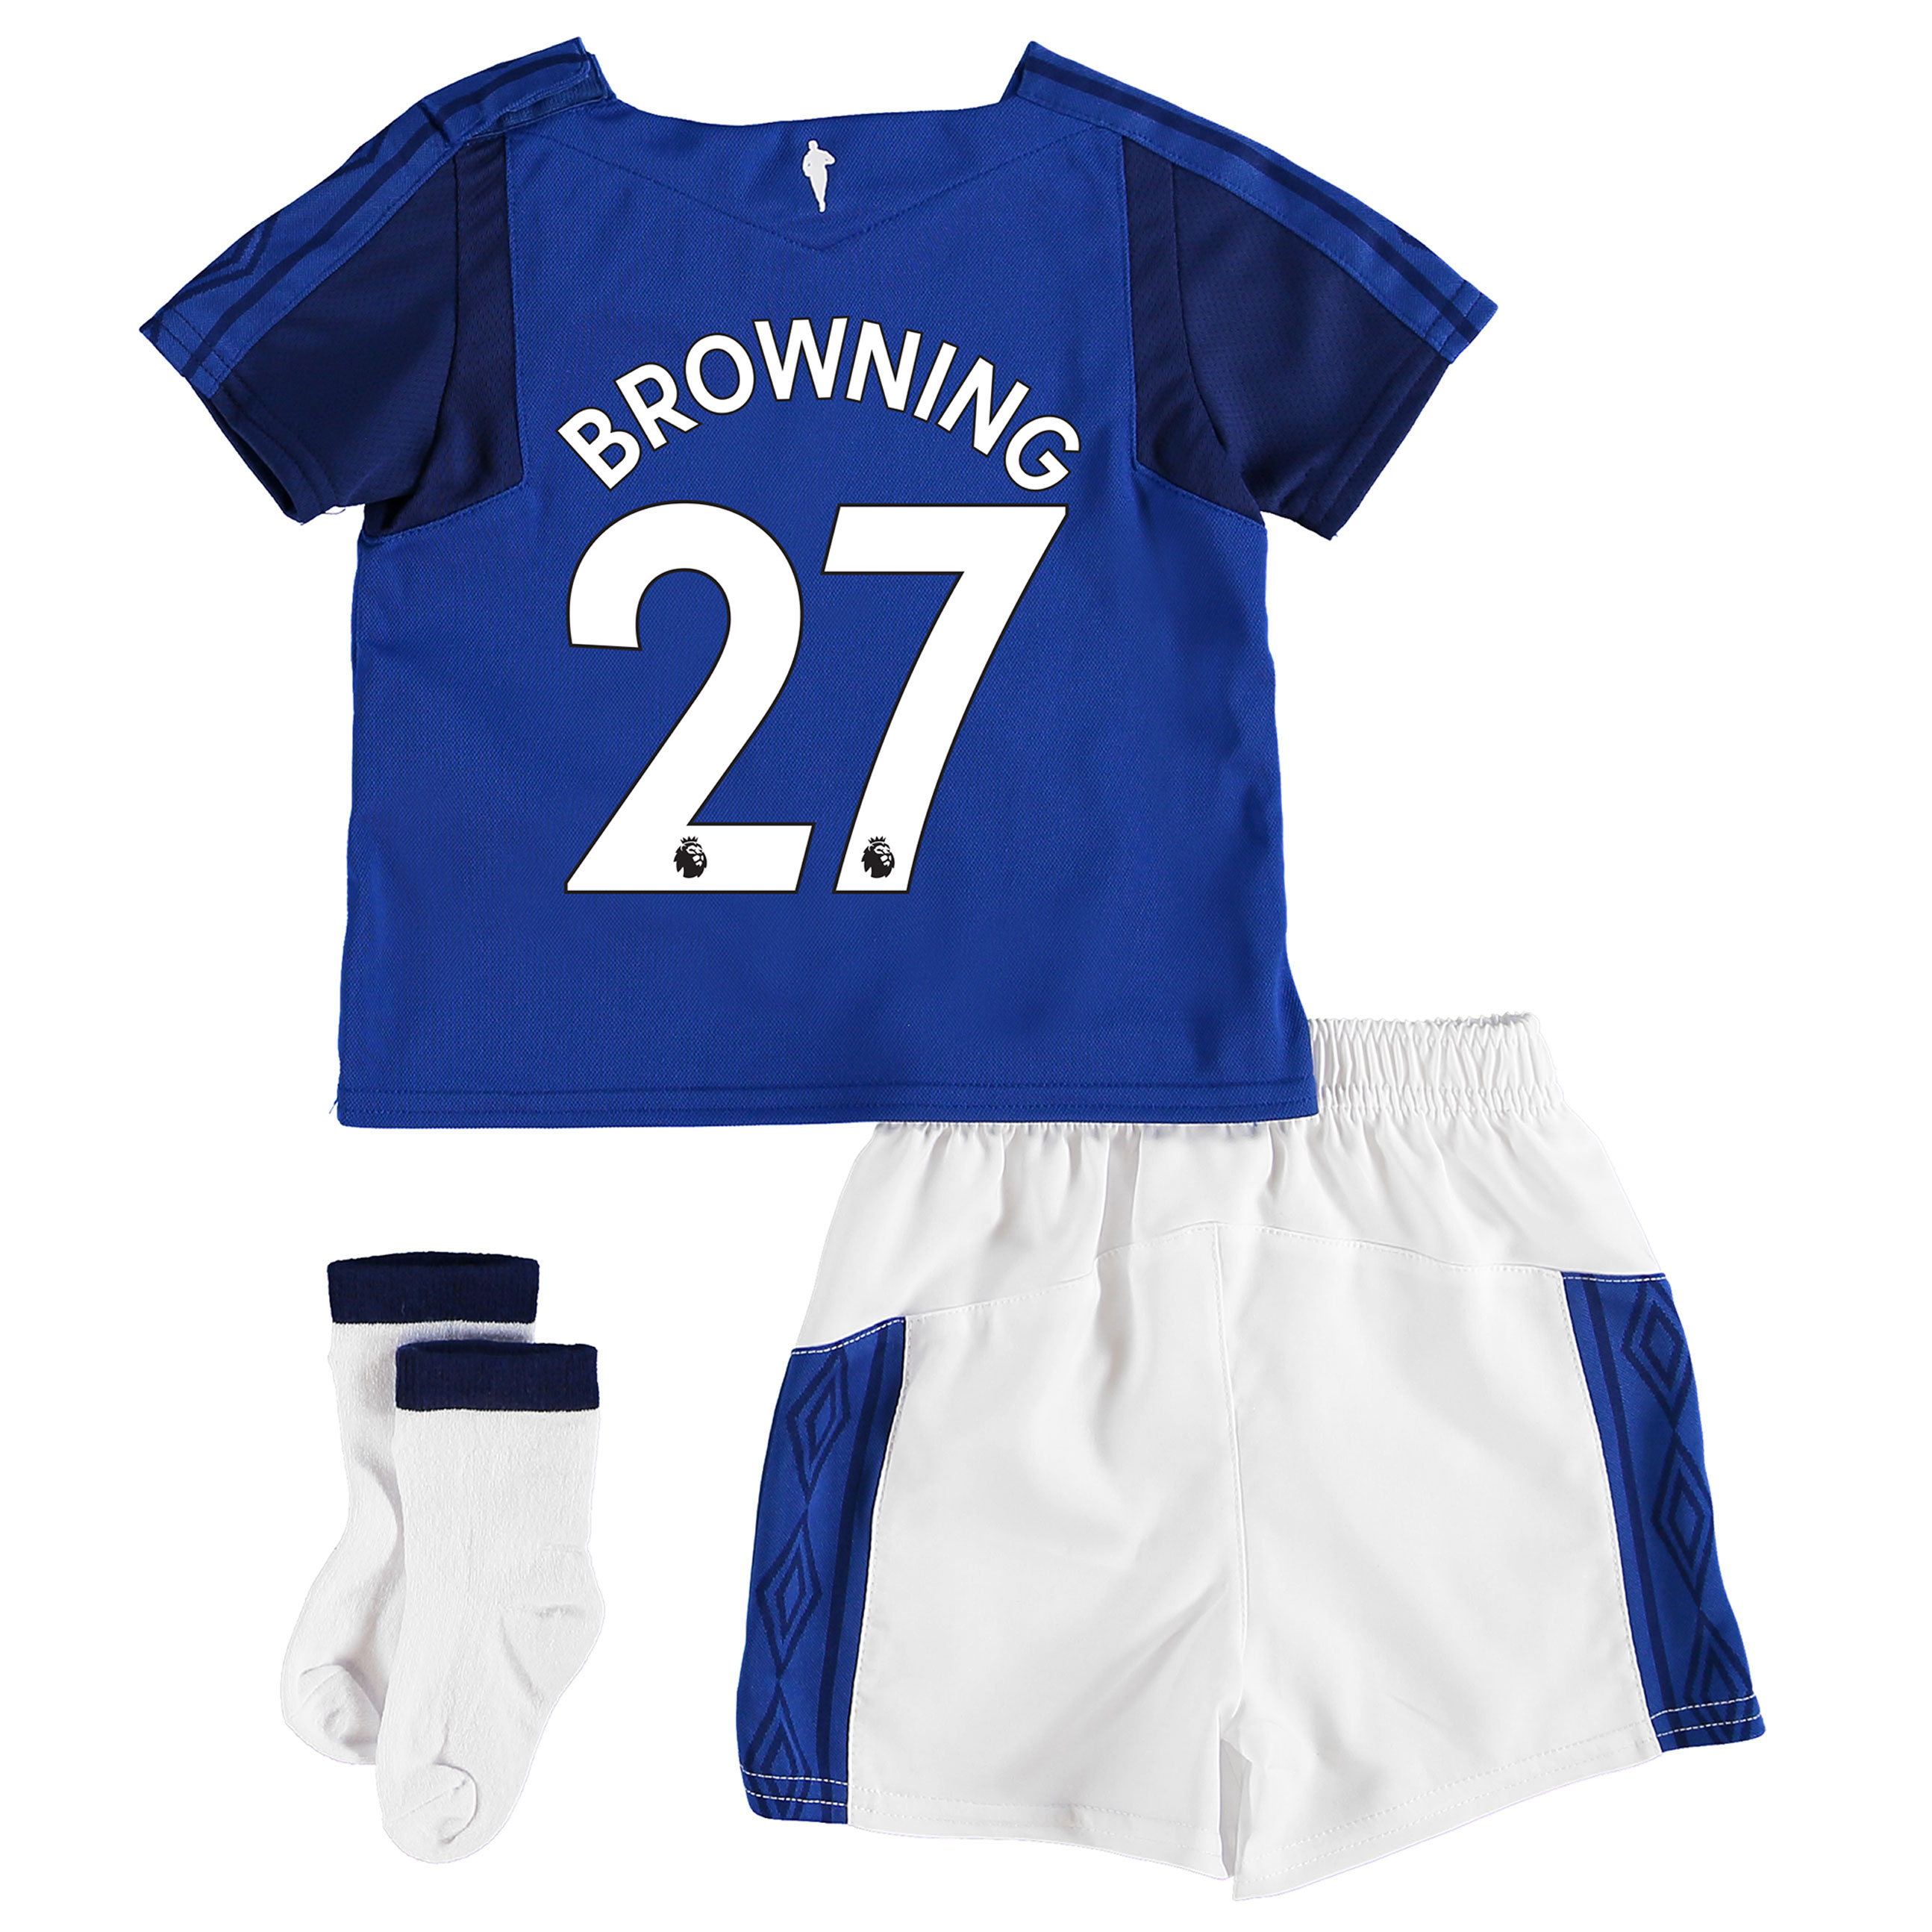 Everton Home Baby Kit 2017/18 with Browning 27 printing